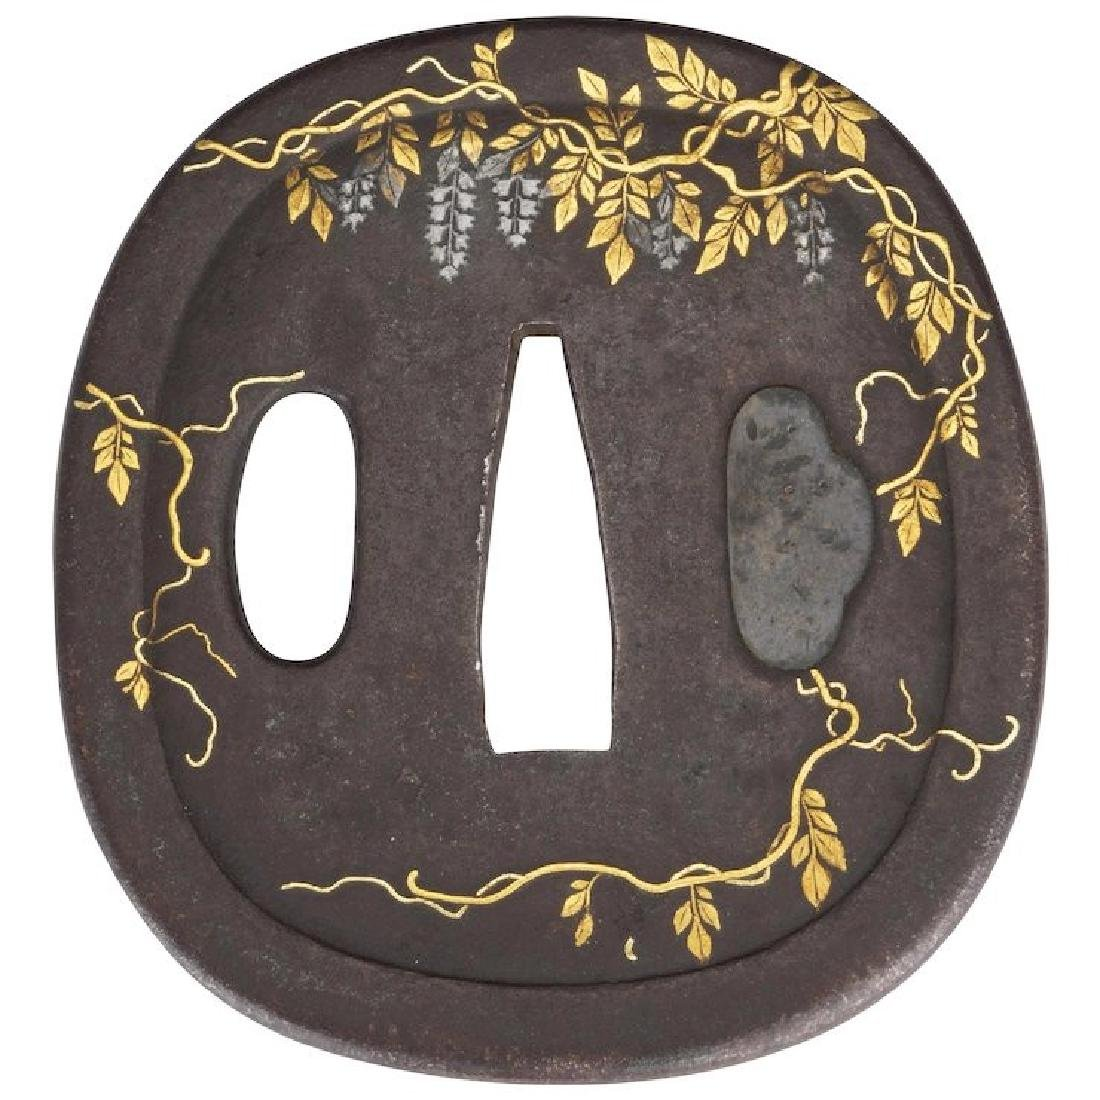 Japanese cast iron Tsuba with inlays of wisteria 19th